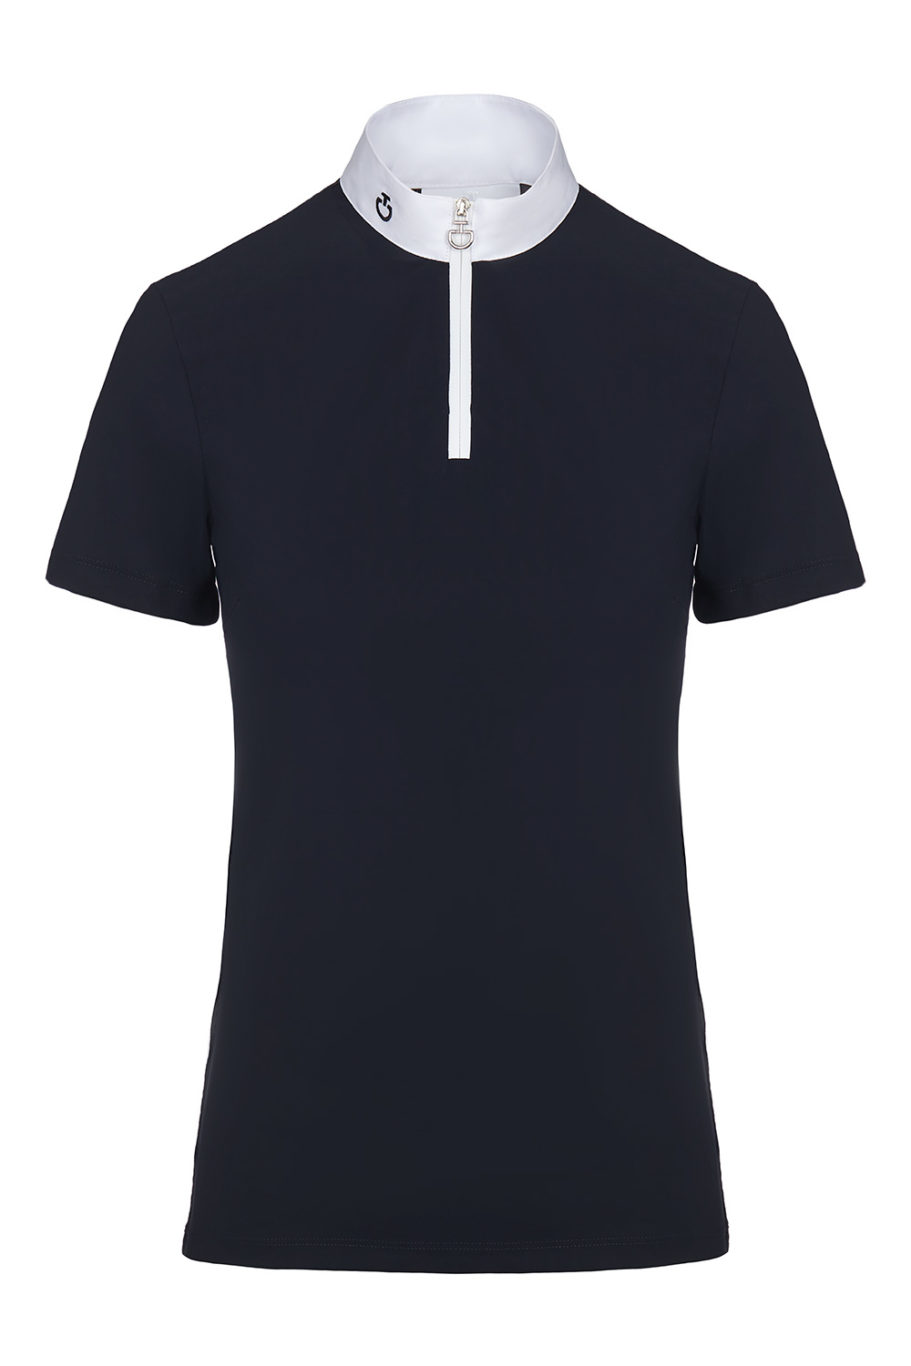 JERSEY + KNIT COMP S/S POLO